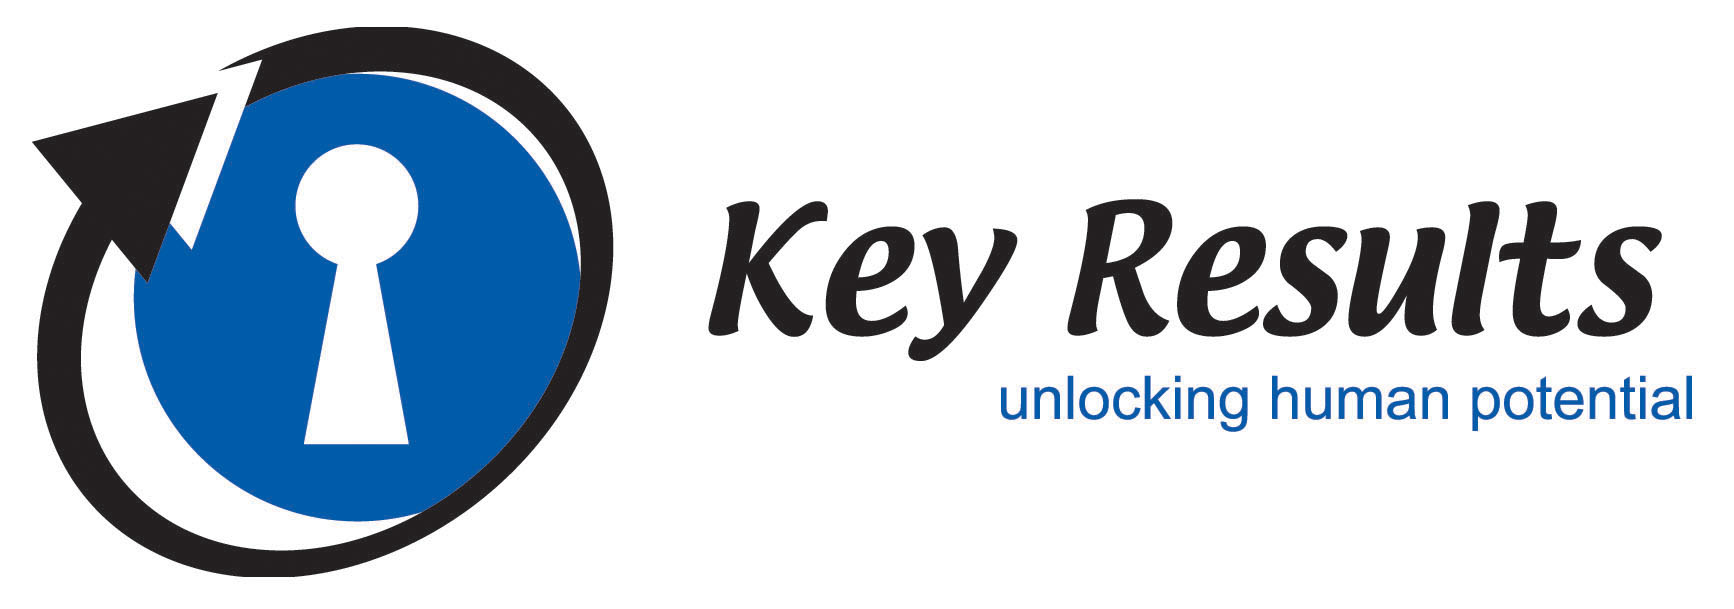 Key Results Logo